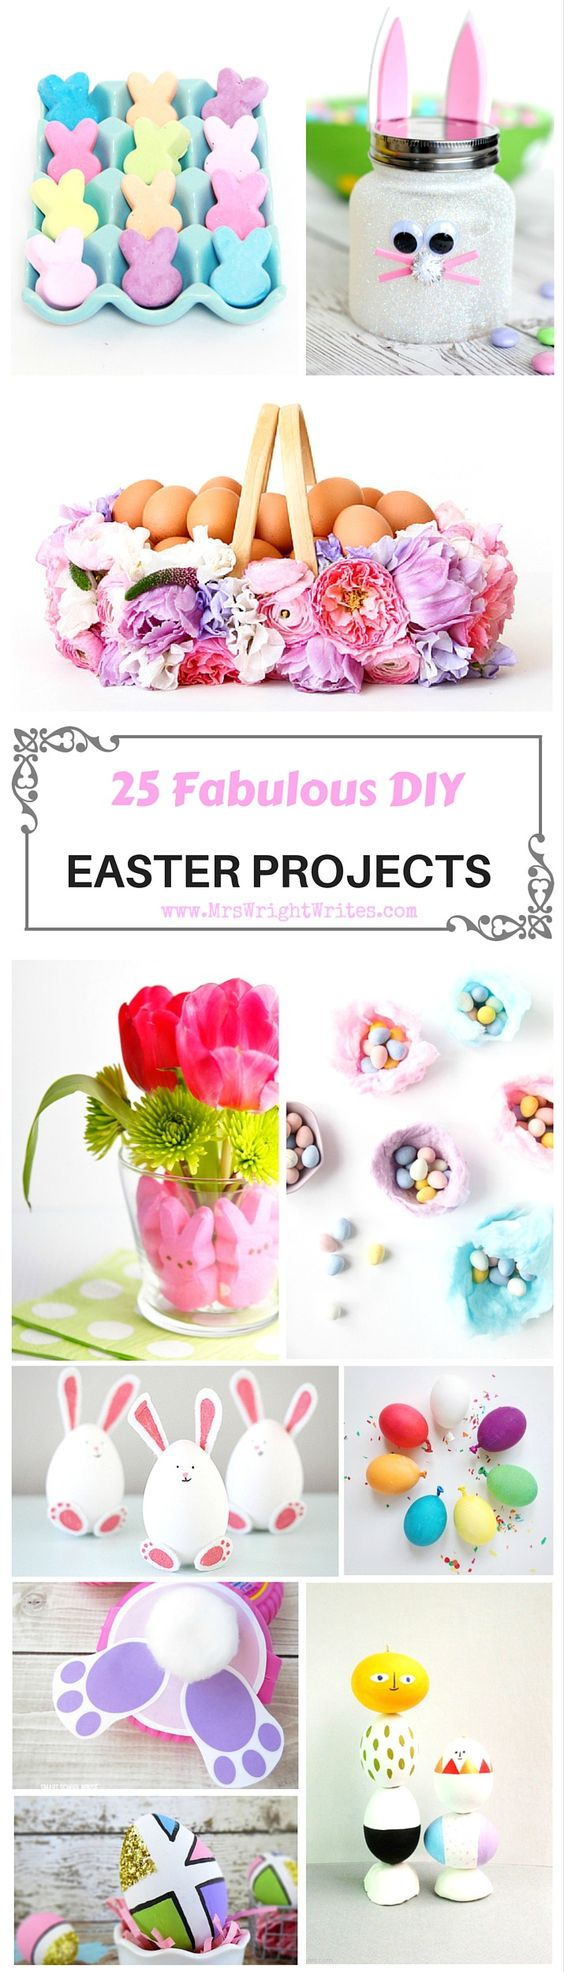 Get in the holiday mood like a pro with these 25 fabulous DIY Easter projects! These are great Easter DIY projects for kids and adults alike!